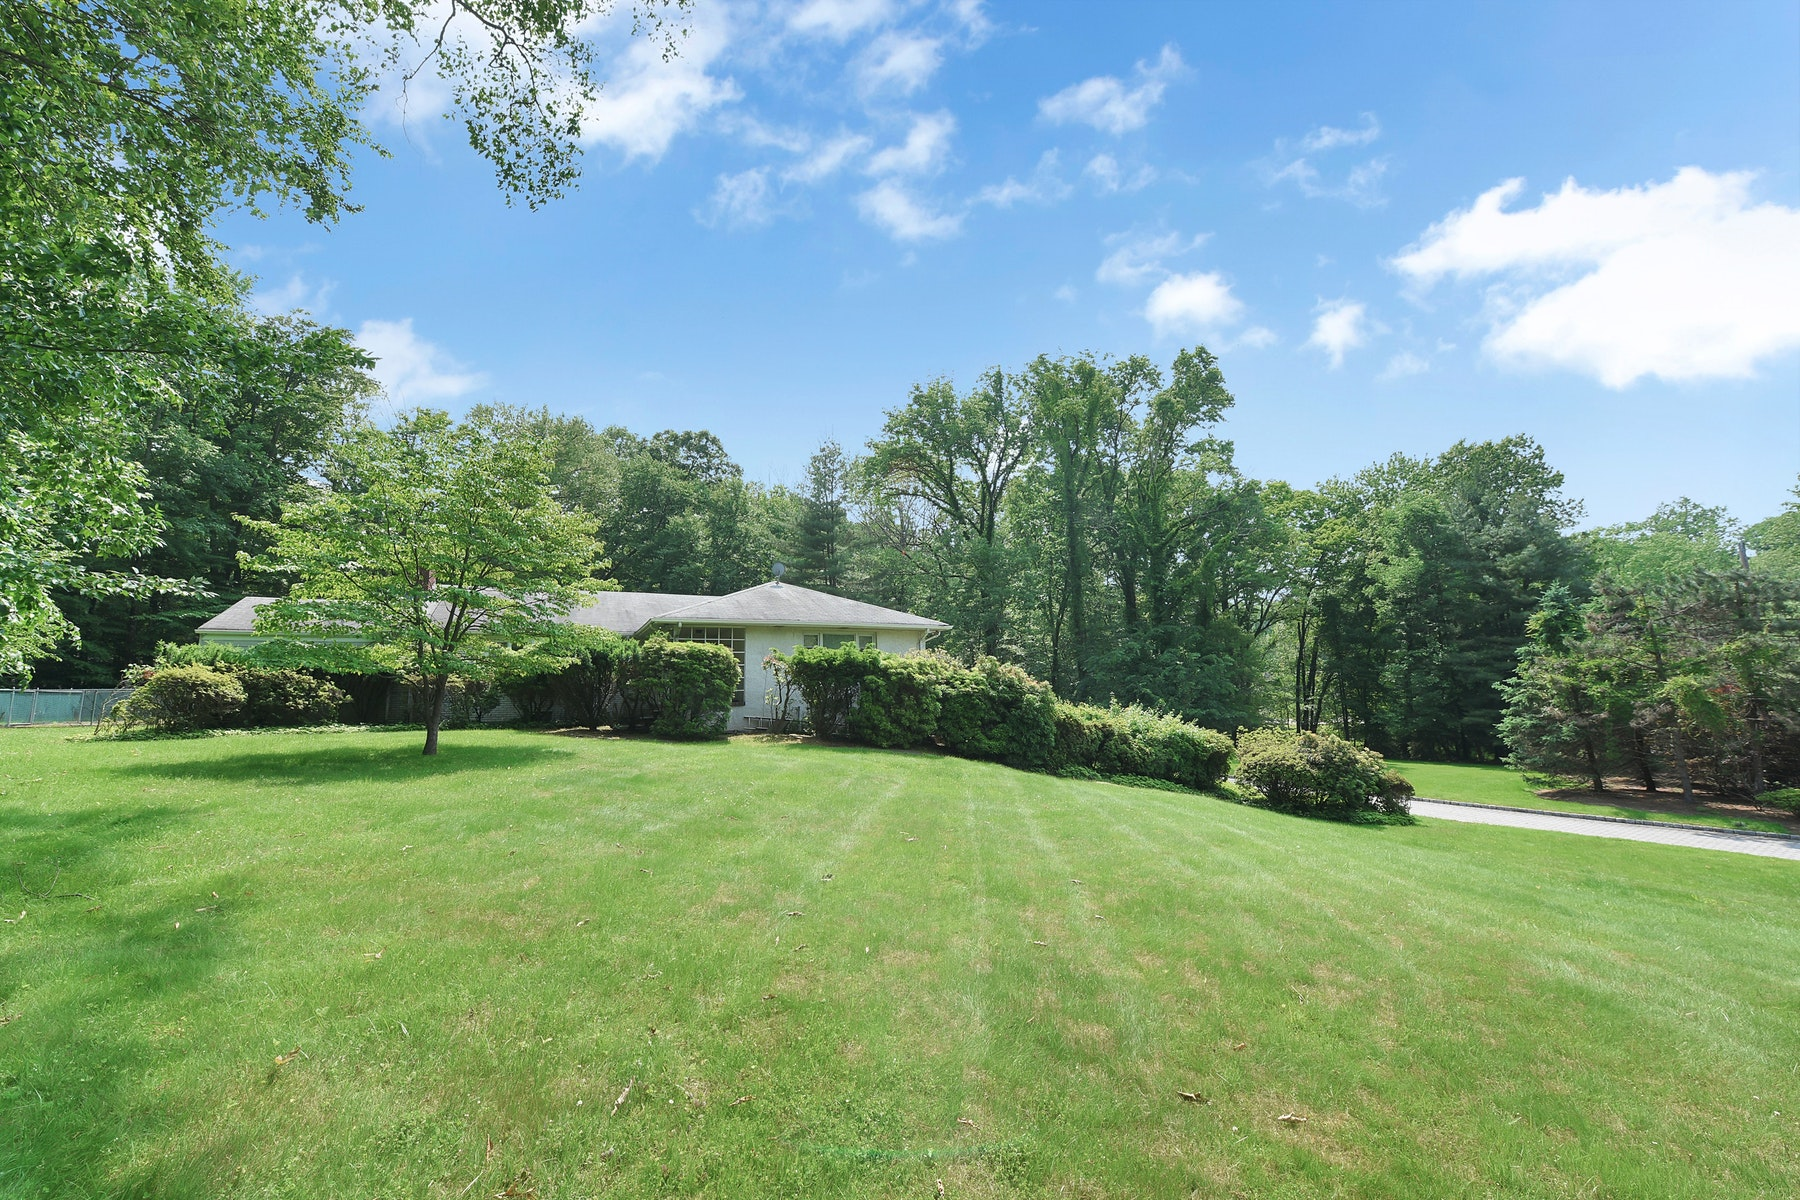 Single Family Homes for Sale at PRIME 2 ACRE LOT 10 Deertrail Rd Saddle River, New Jersey 07458 United States